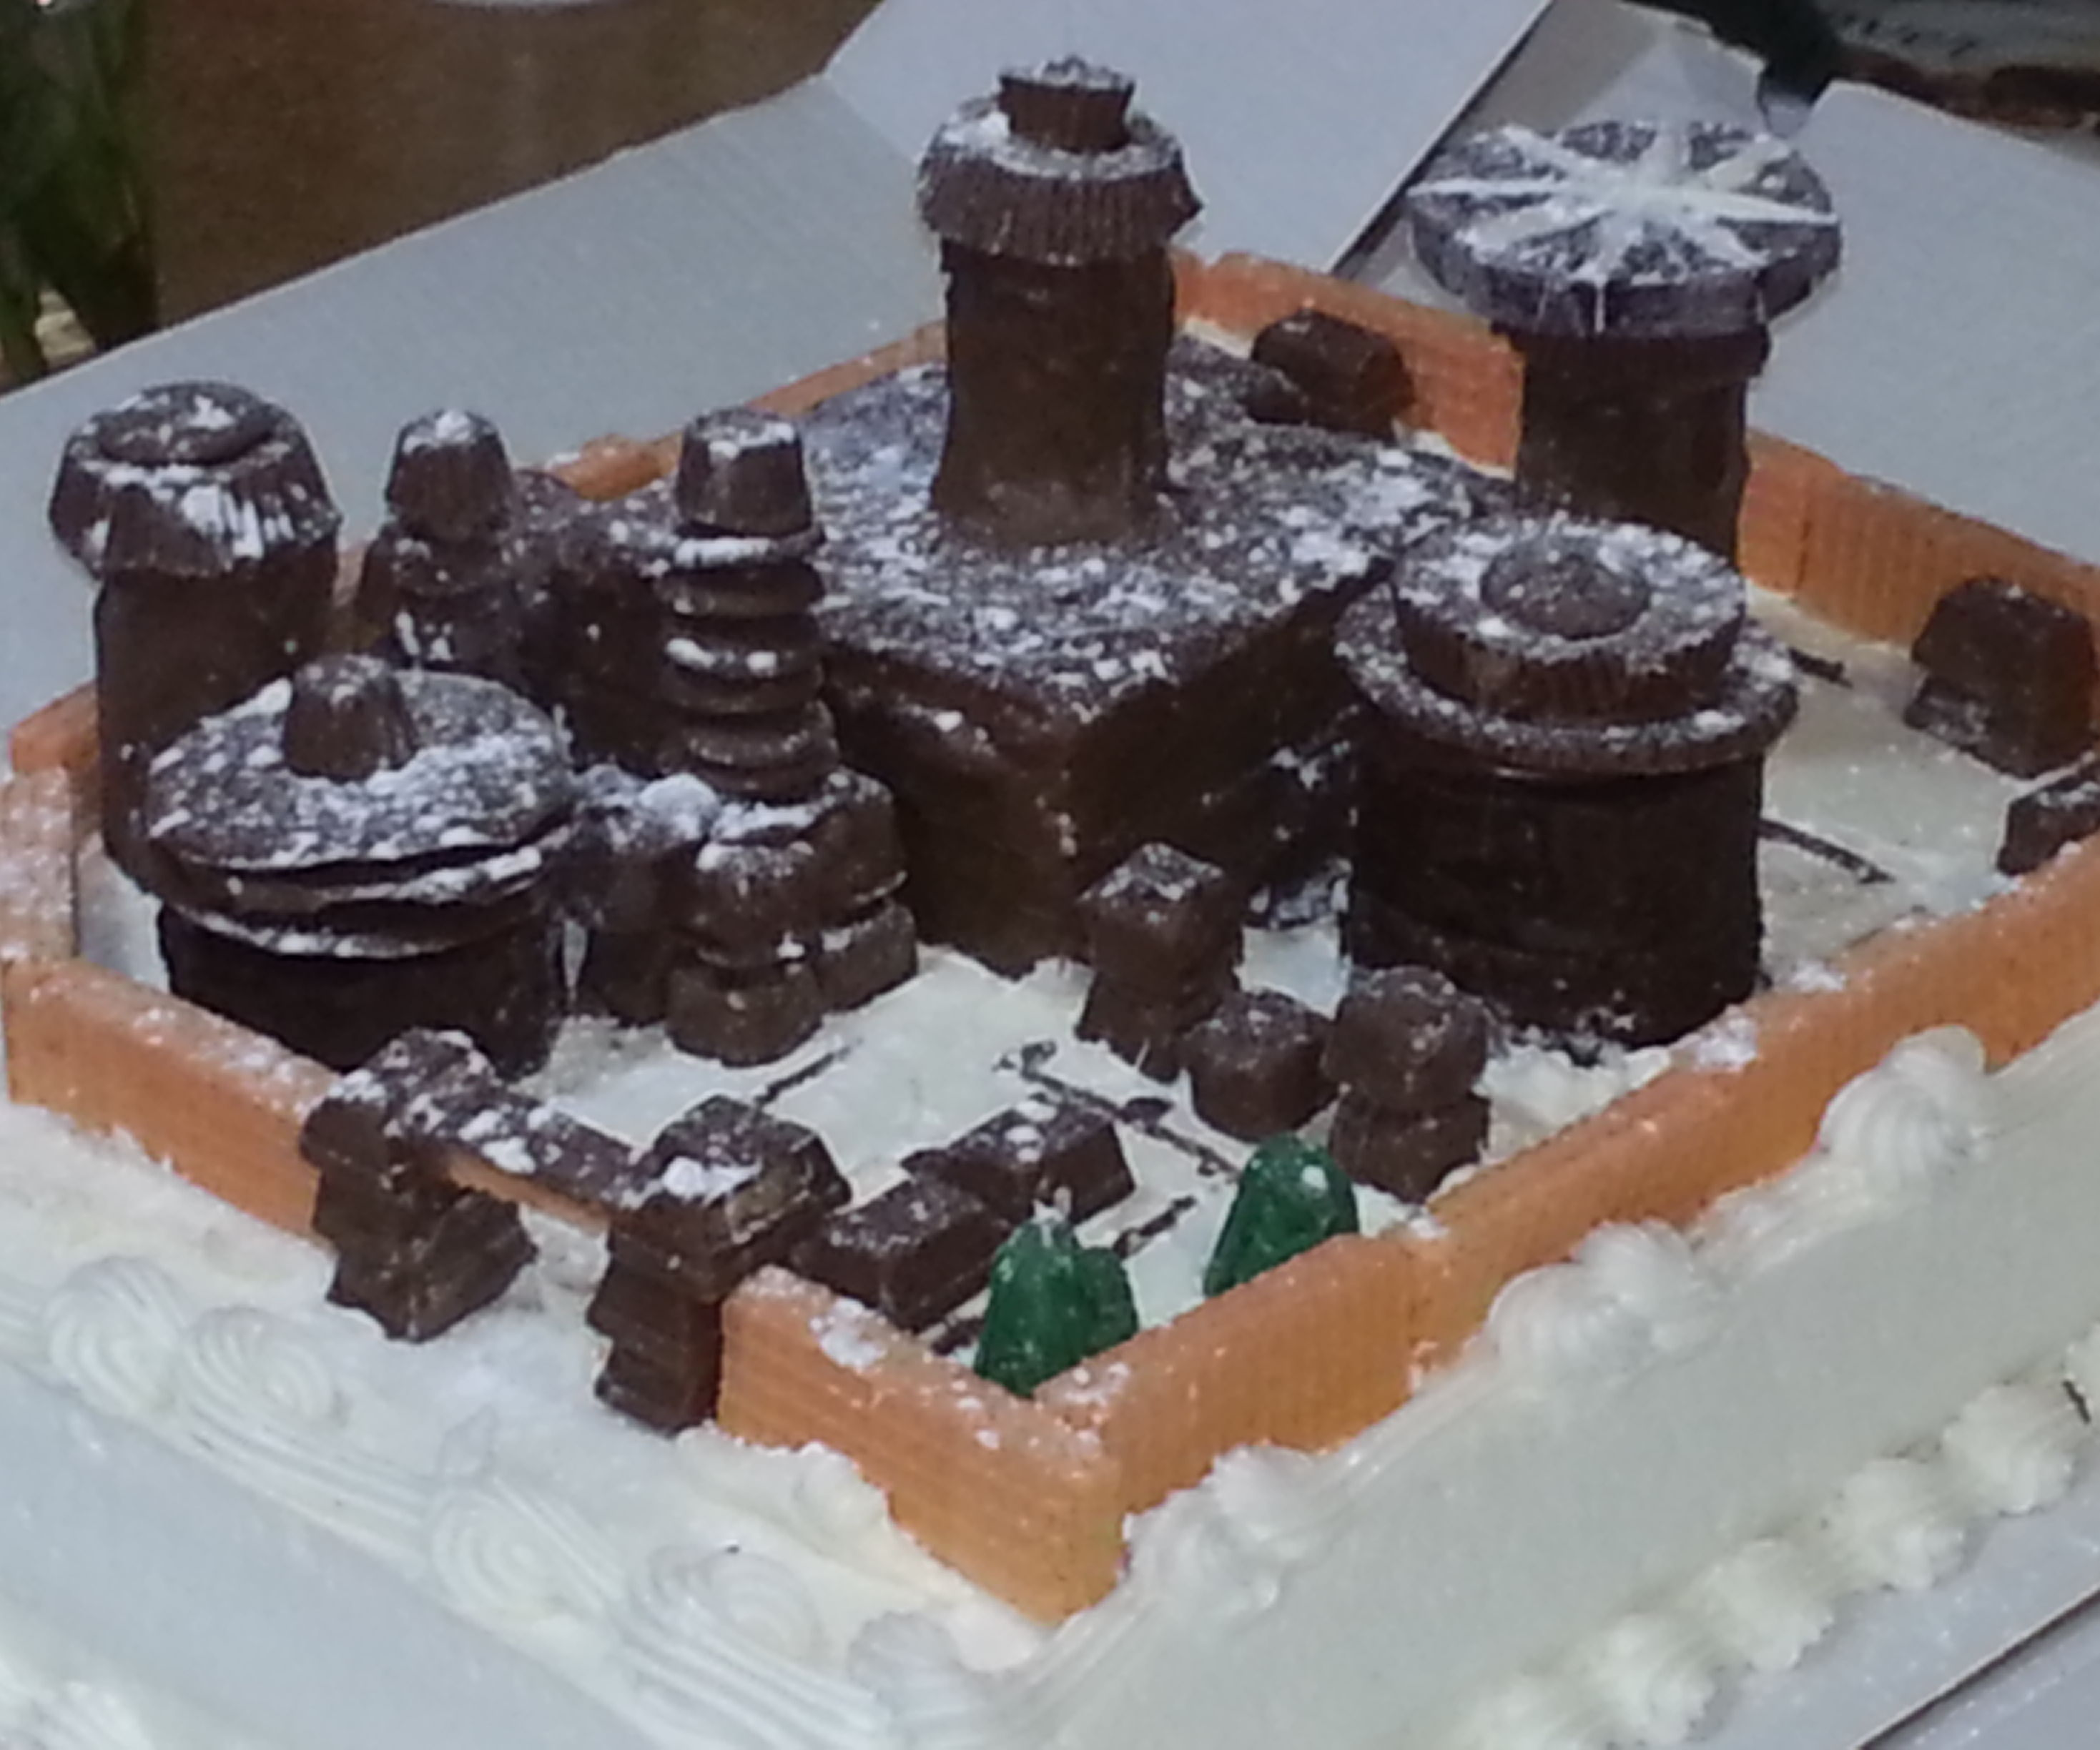 Winterfell Cake - From Game of Thrones